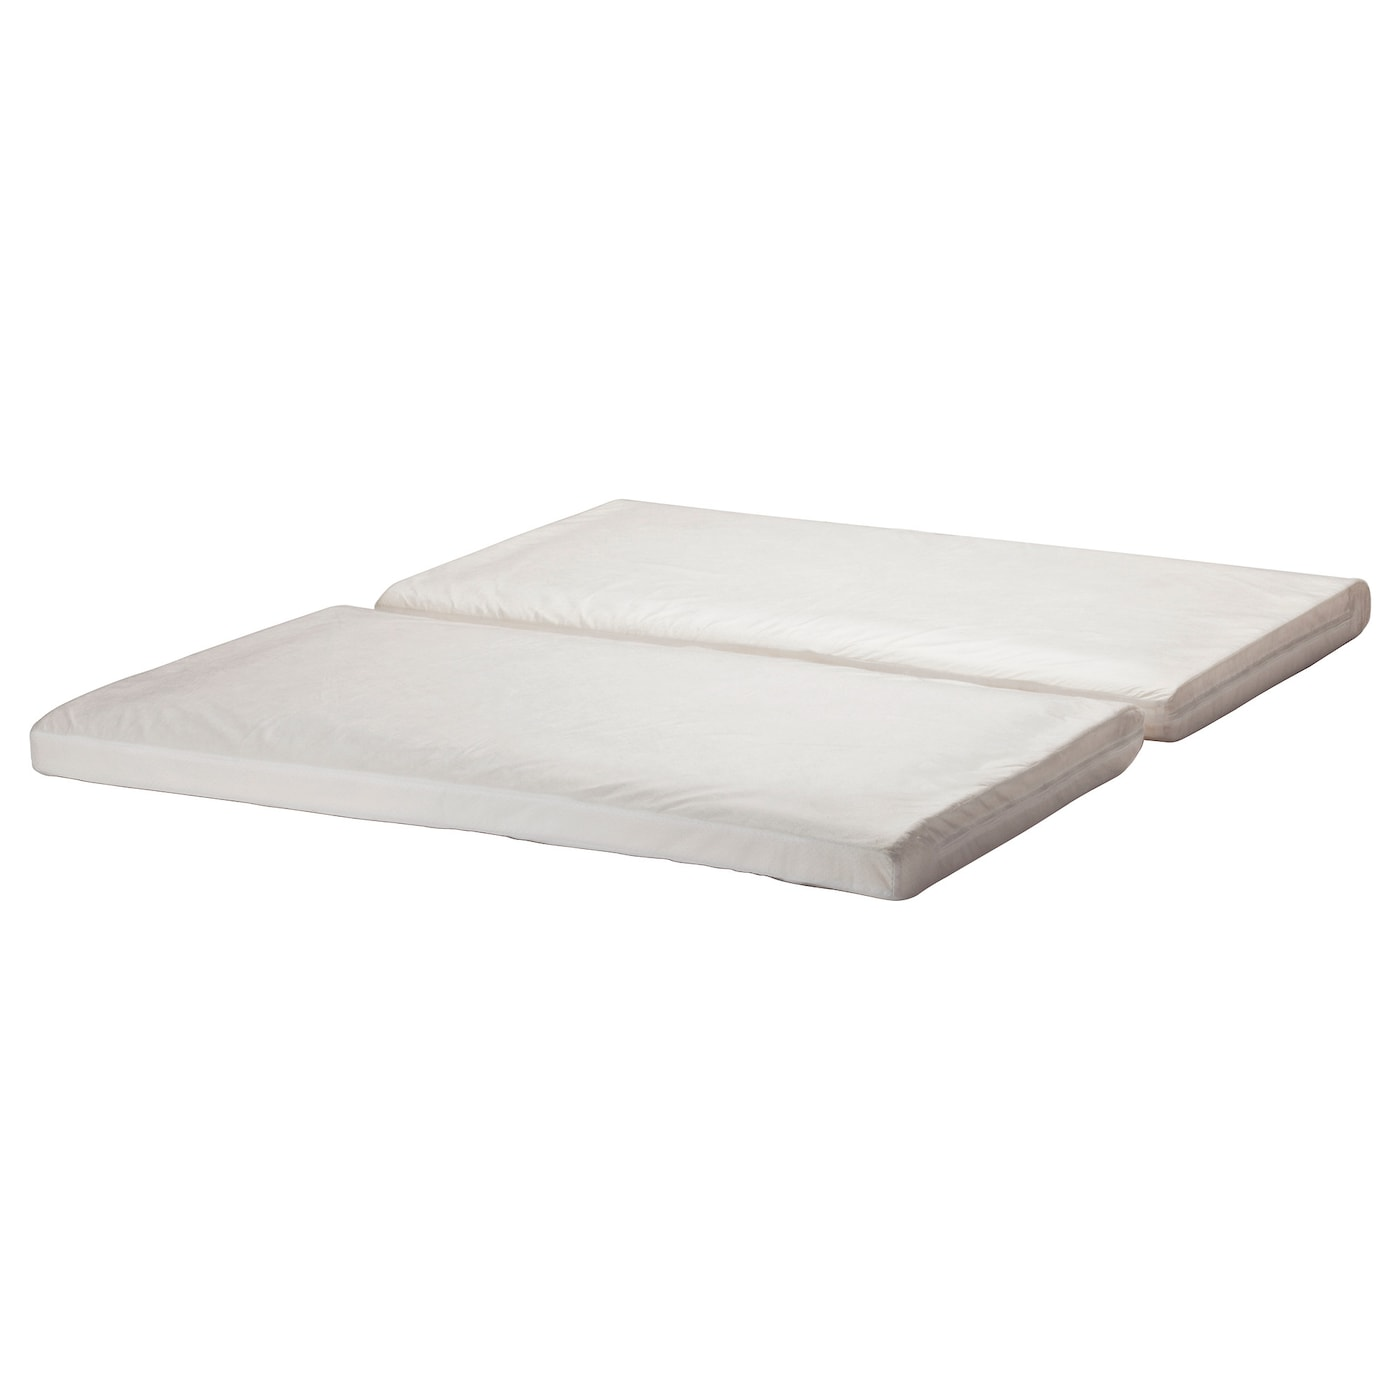 Marieby mattress for 2 seat sofa bed ikea - Matelas ikea 140x200 ...